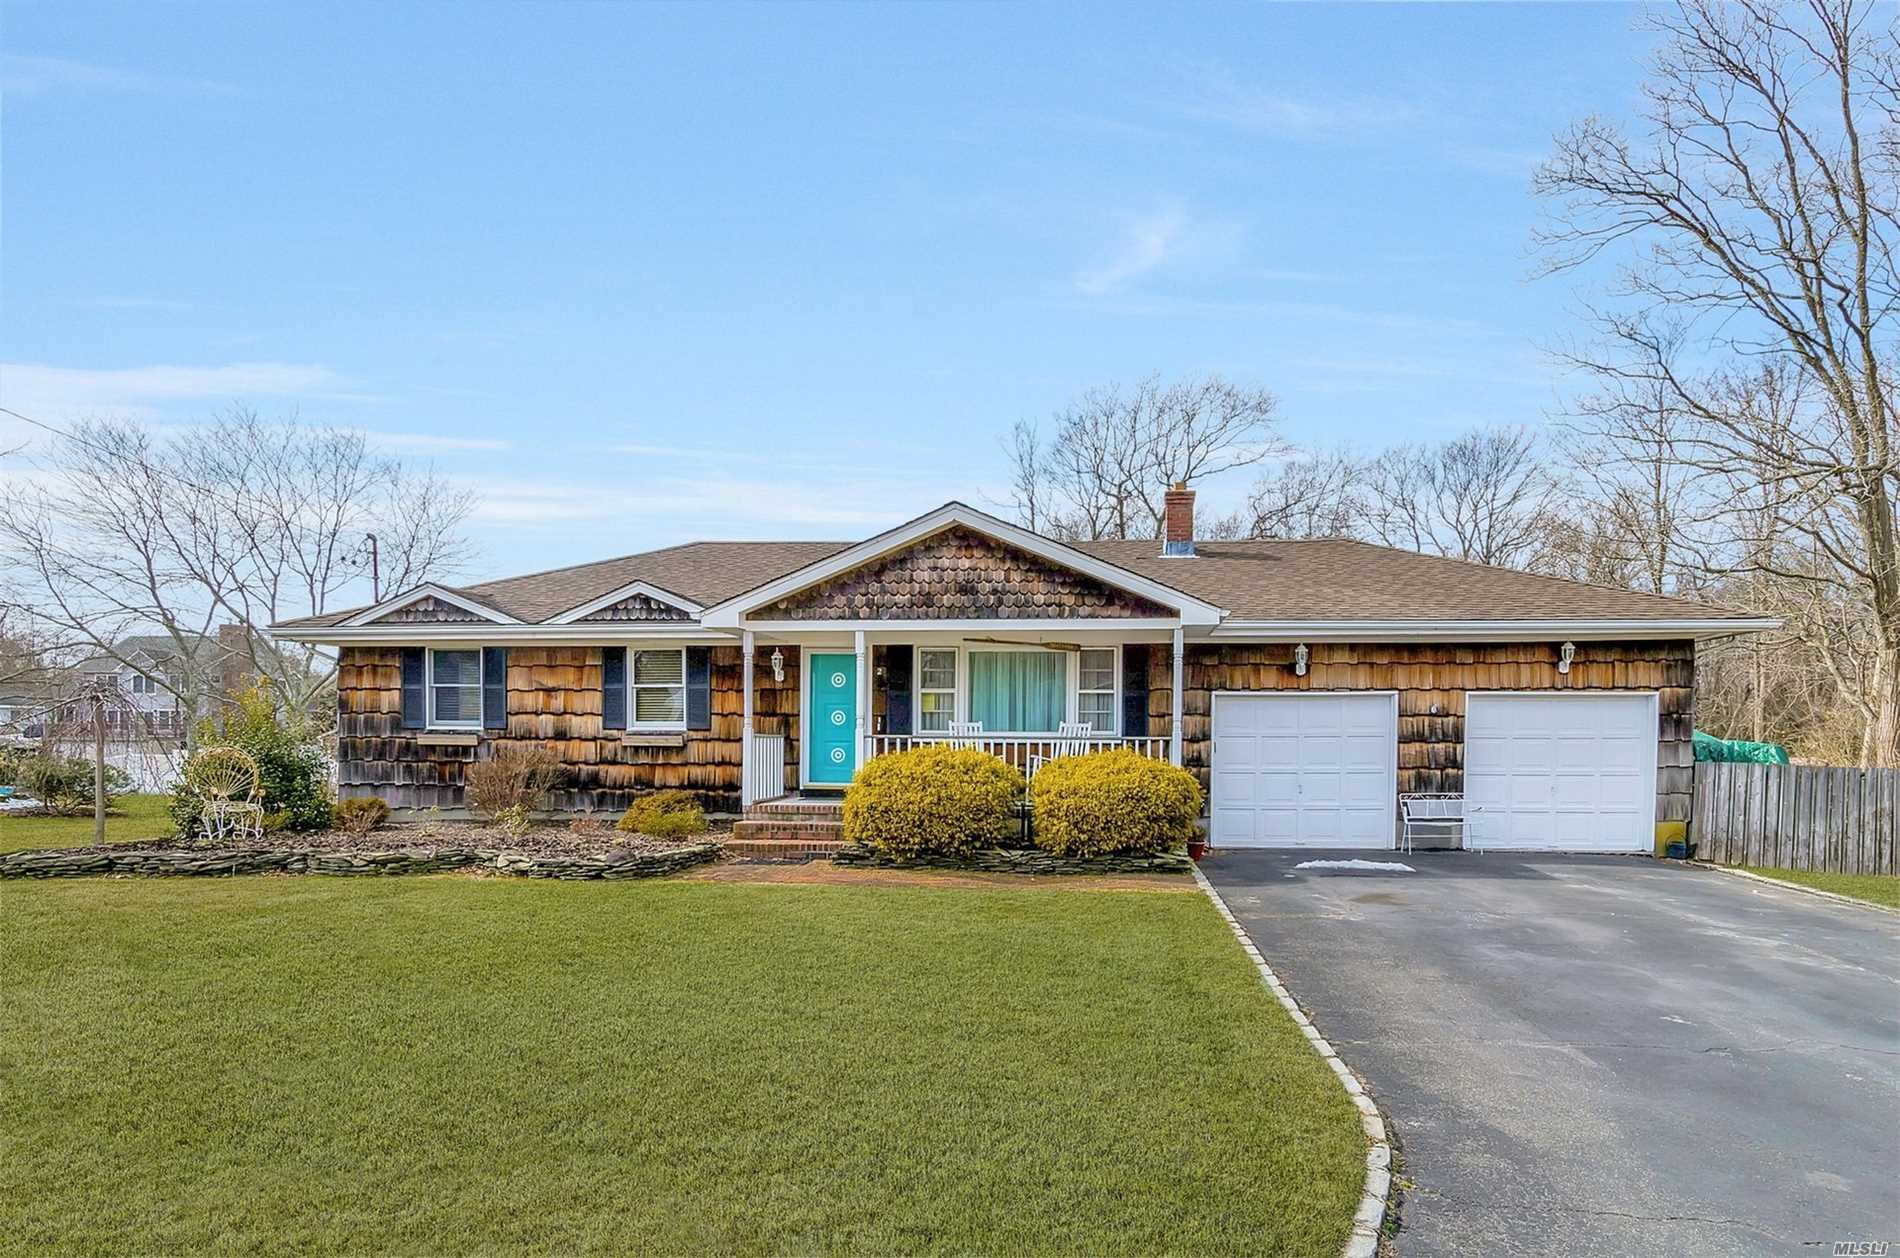 This Expanded 3 Bed Ranch Is A Boater's Dream Canal Front With 75 Feet Of Bulkhead A Ramp And A Boat Lift. Inside This Well-Appointed Home You Have An Expansive Family Room Which Is Open To An Updated Kitchen And Then Out To A 14X38 Ft Brazilian Redwood Deck With A Hot Tub. You Have A Full Finished Basement With A Bar And Full Bath Plus A 2-Car Garage.